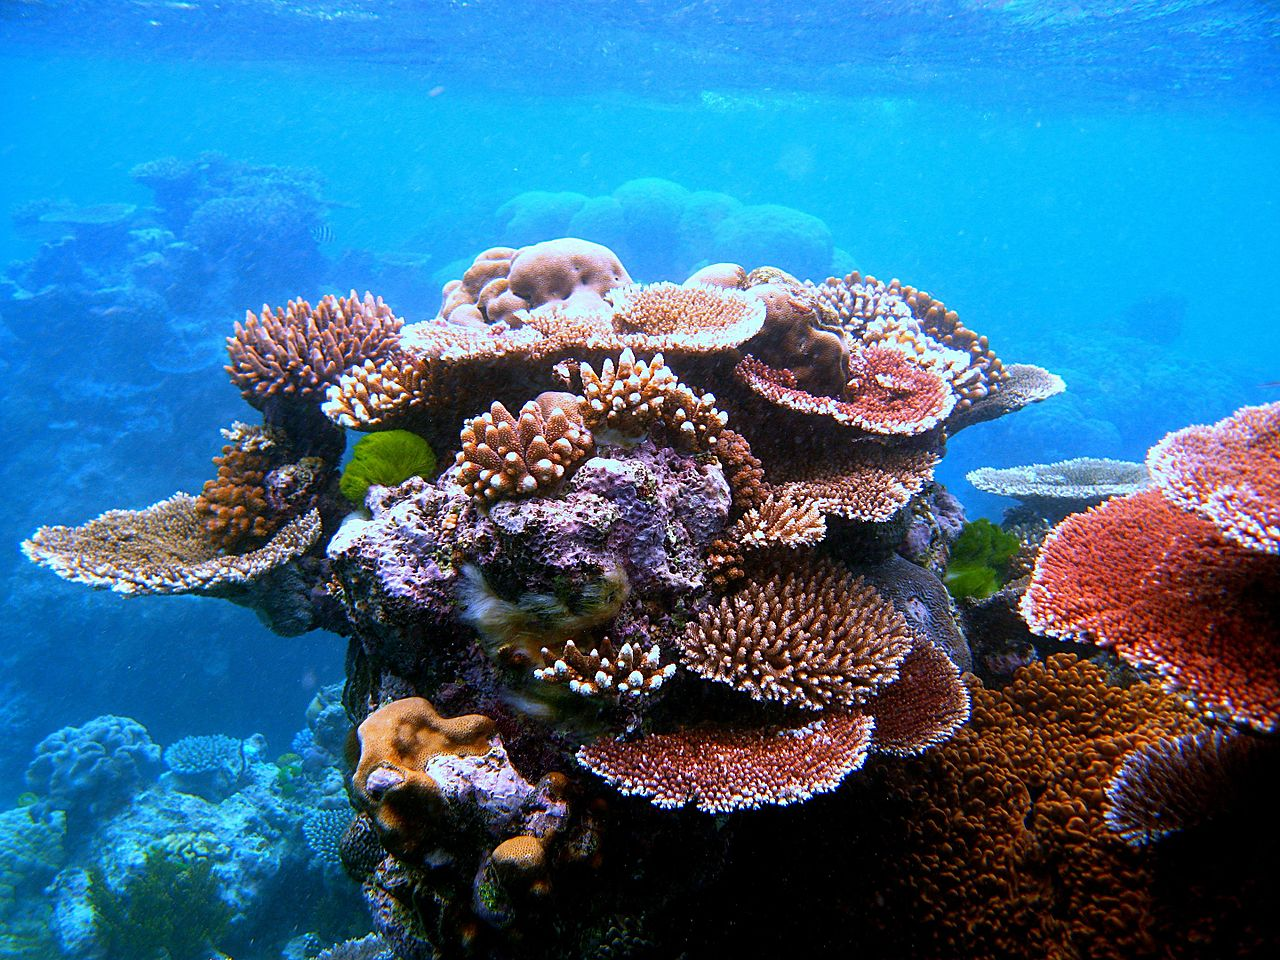 Coral reefs, a variety of corals